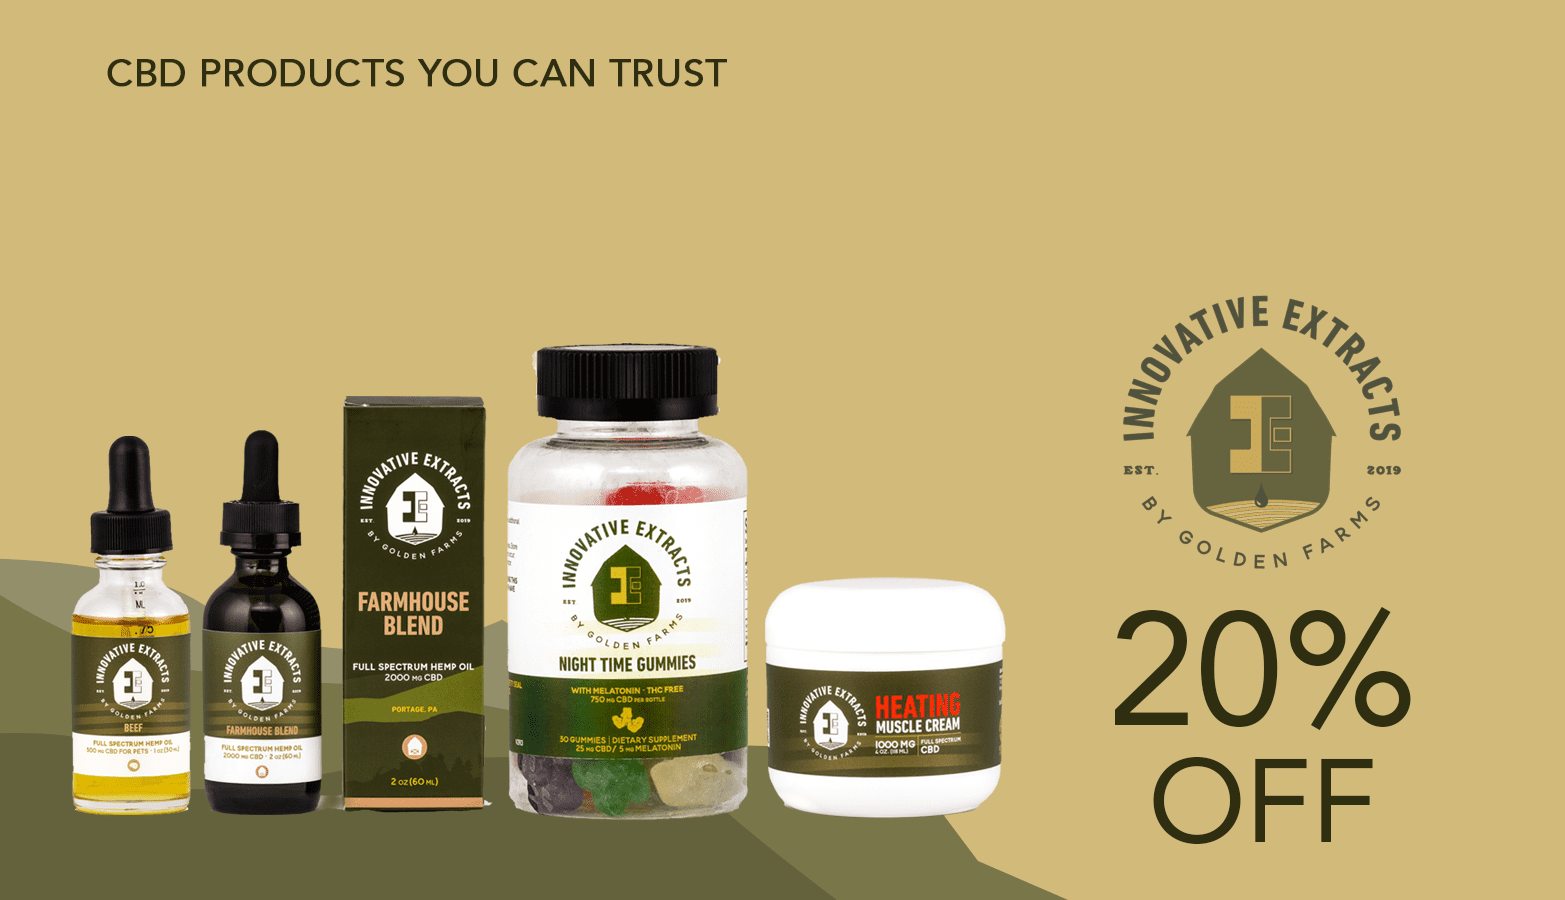 Innovative Extracts CBD Coupon Code Website